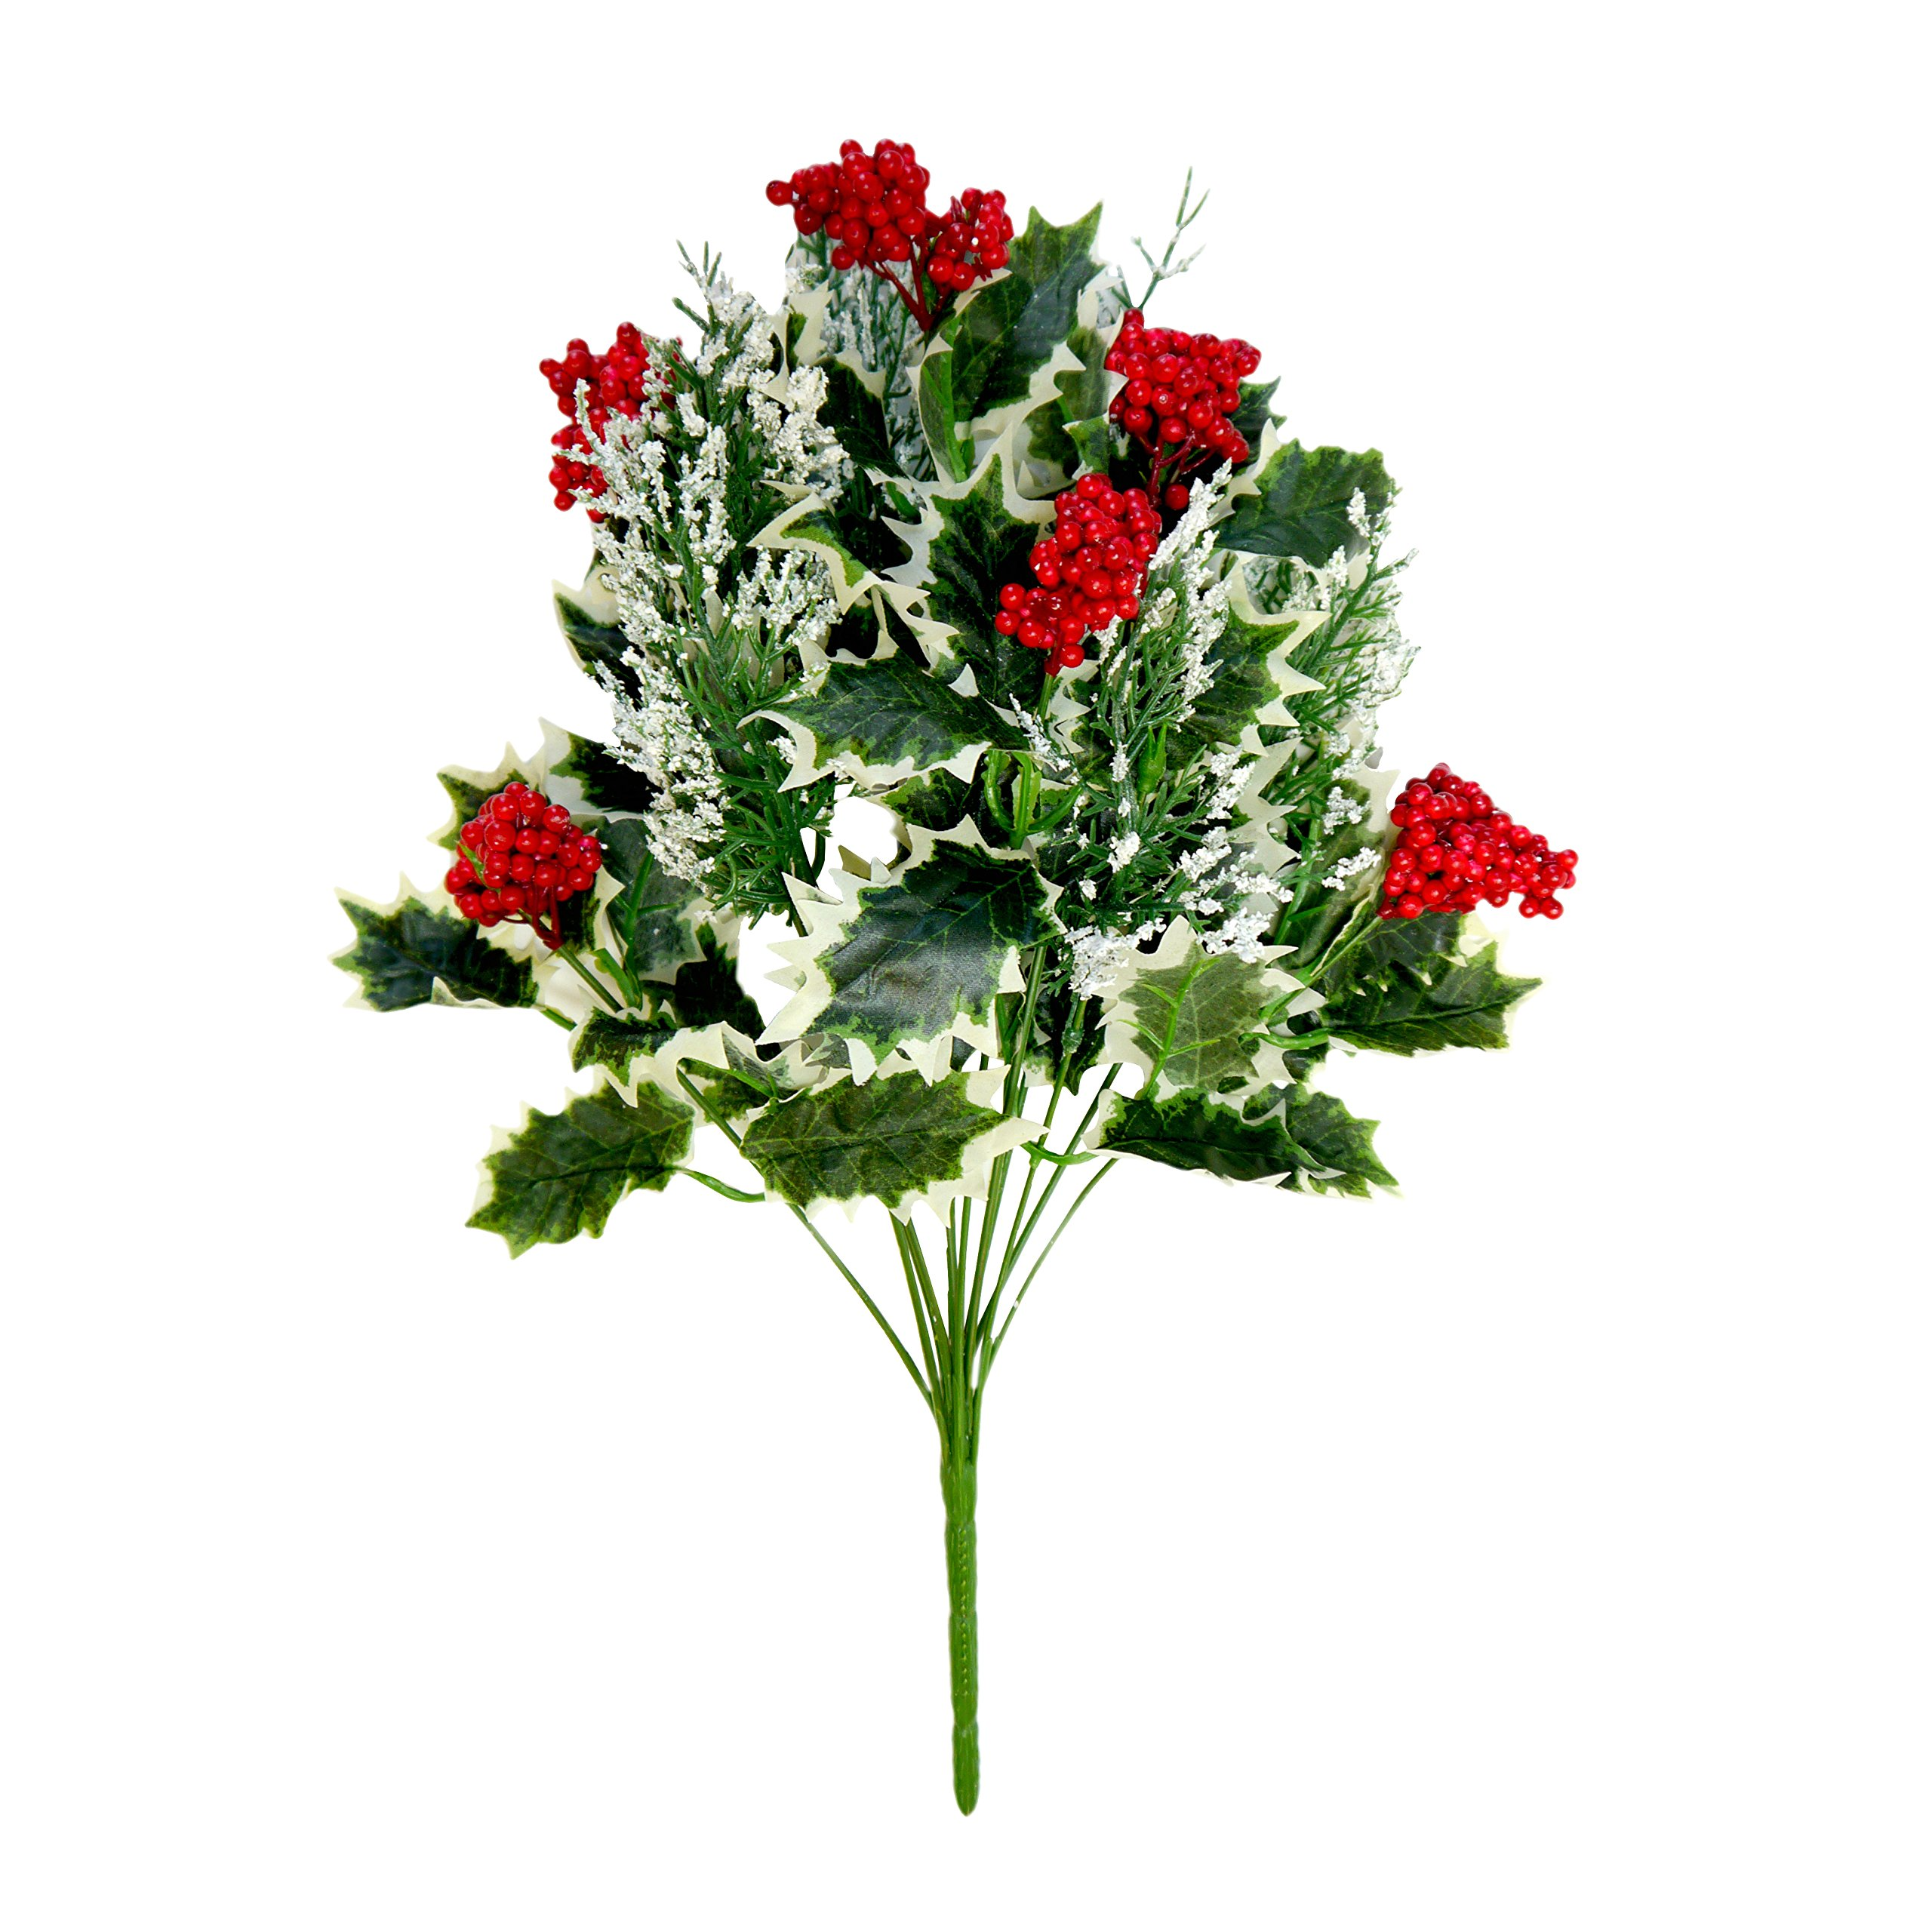 Christmas Holly Bush with Berries 16 Inch Set of 6